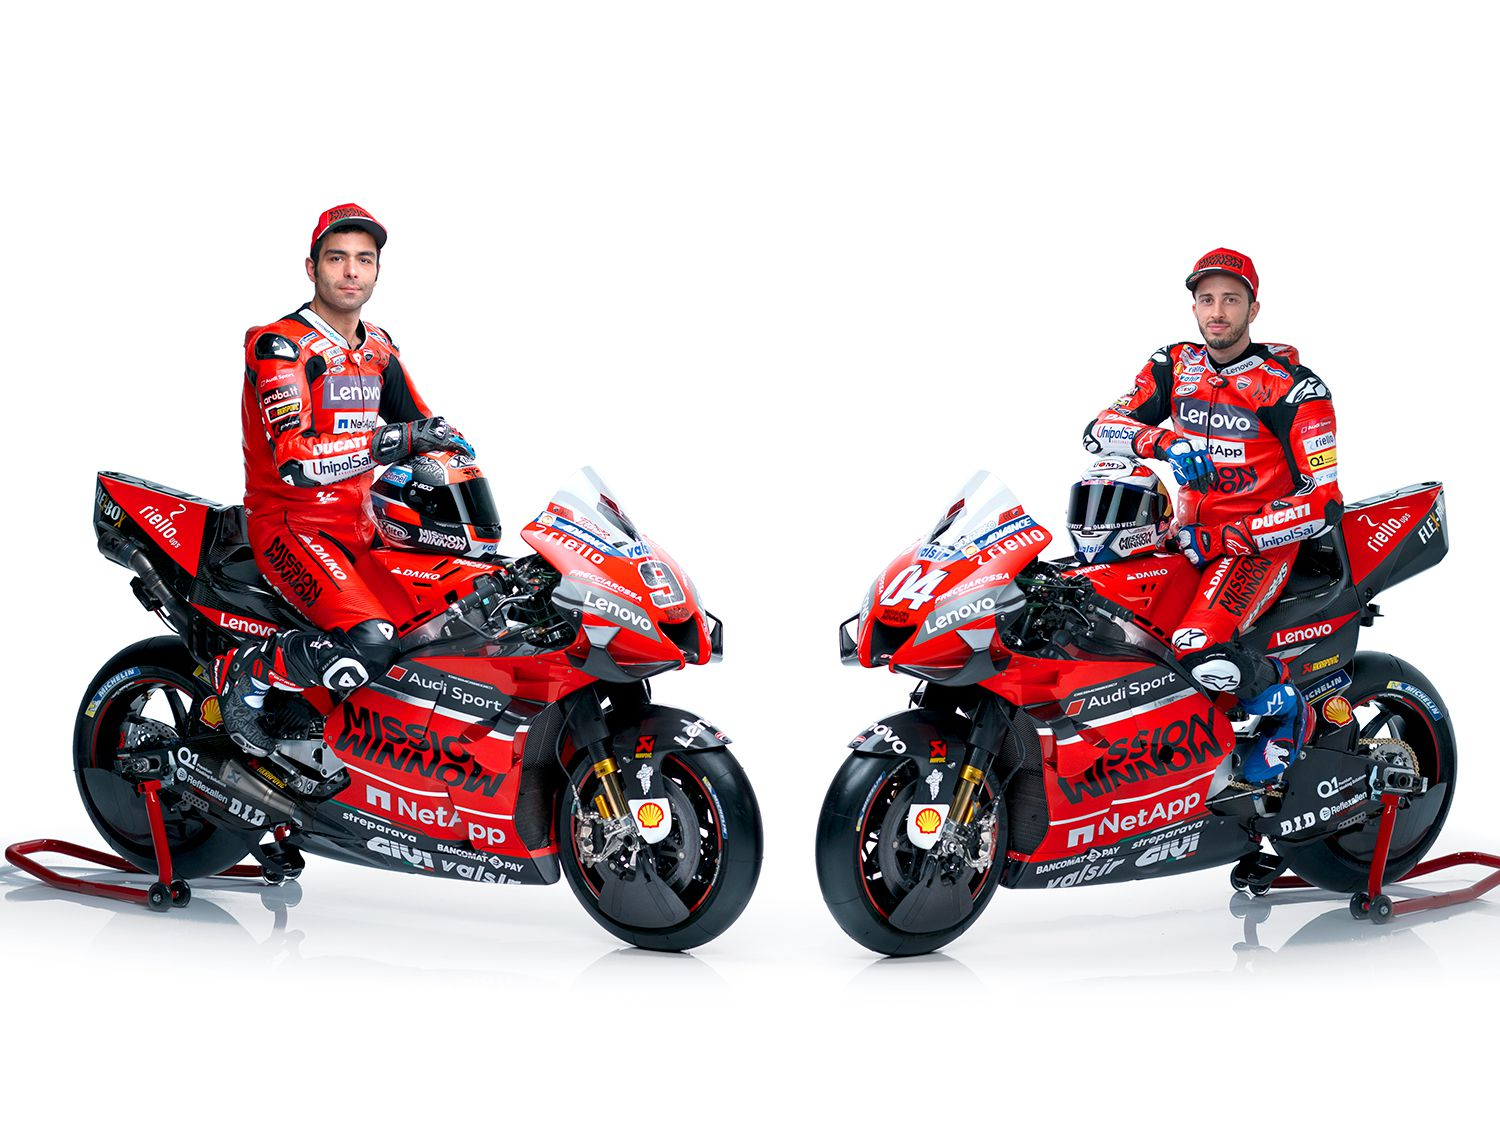 Riding the red and black Mission Winnow Desmosedici GP20 racebikes will be Andrea Dovizioso (#04), the 2019 championship runner-up, and Danilo Petrucci (#9) who finished sixth in the 2019 championship.